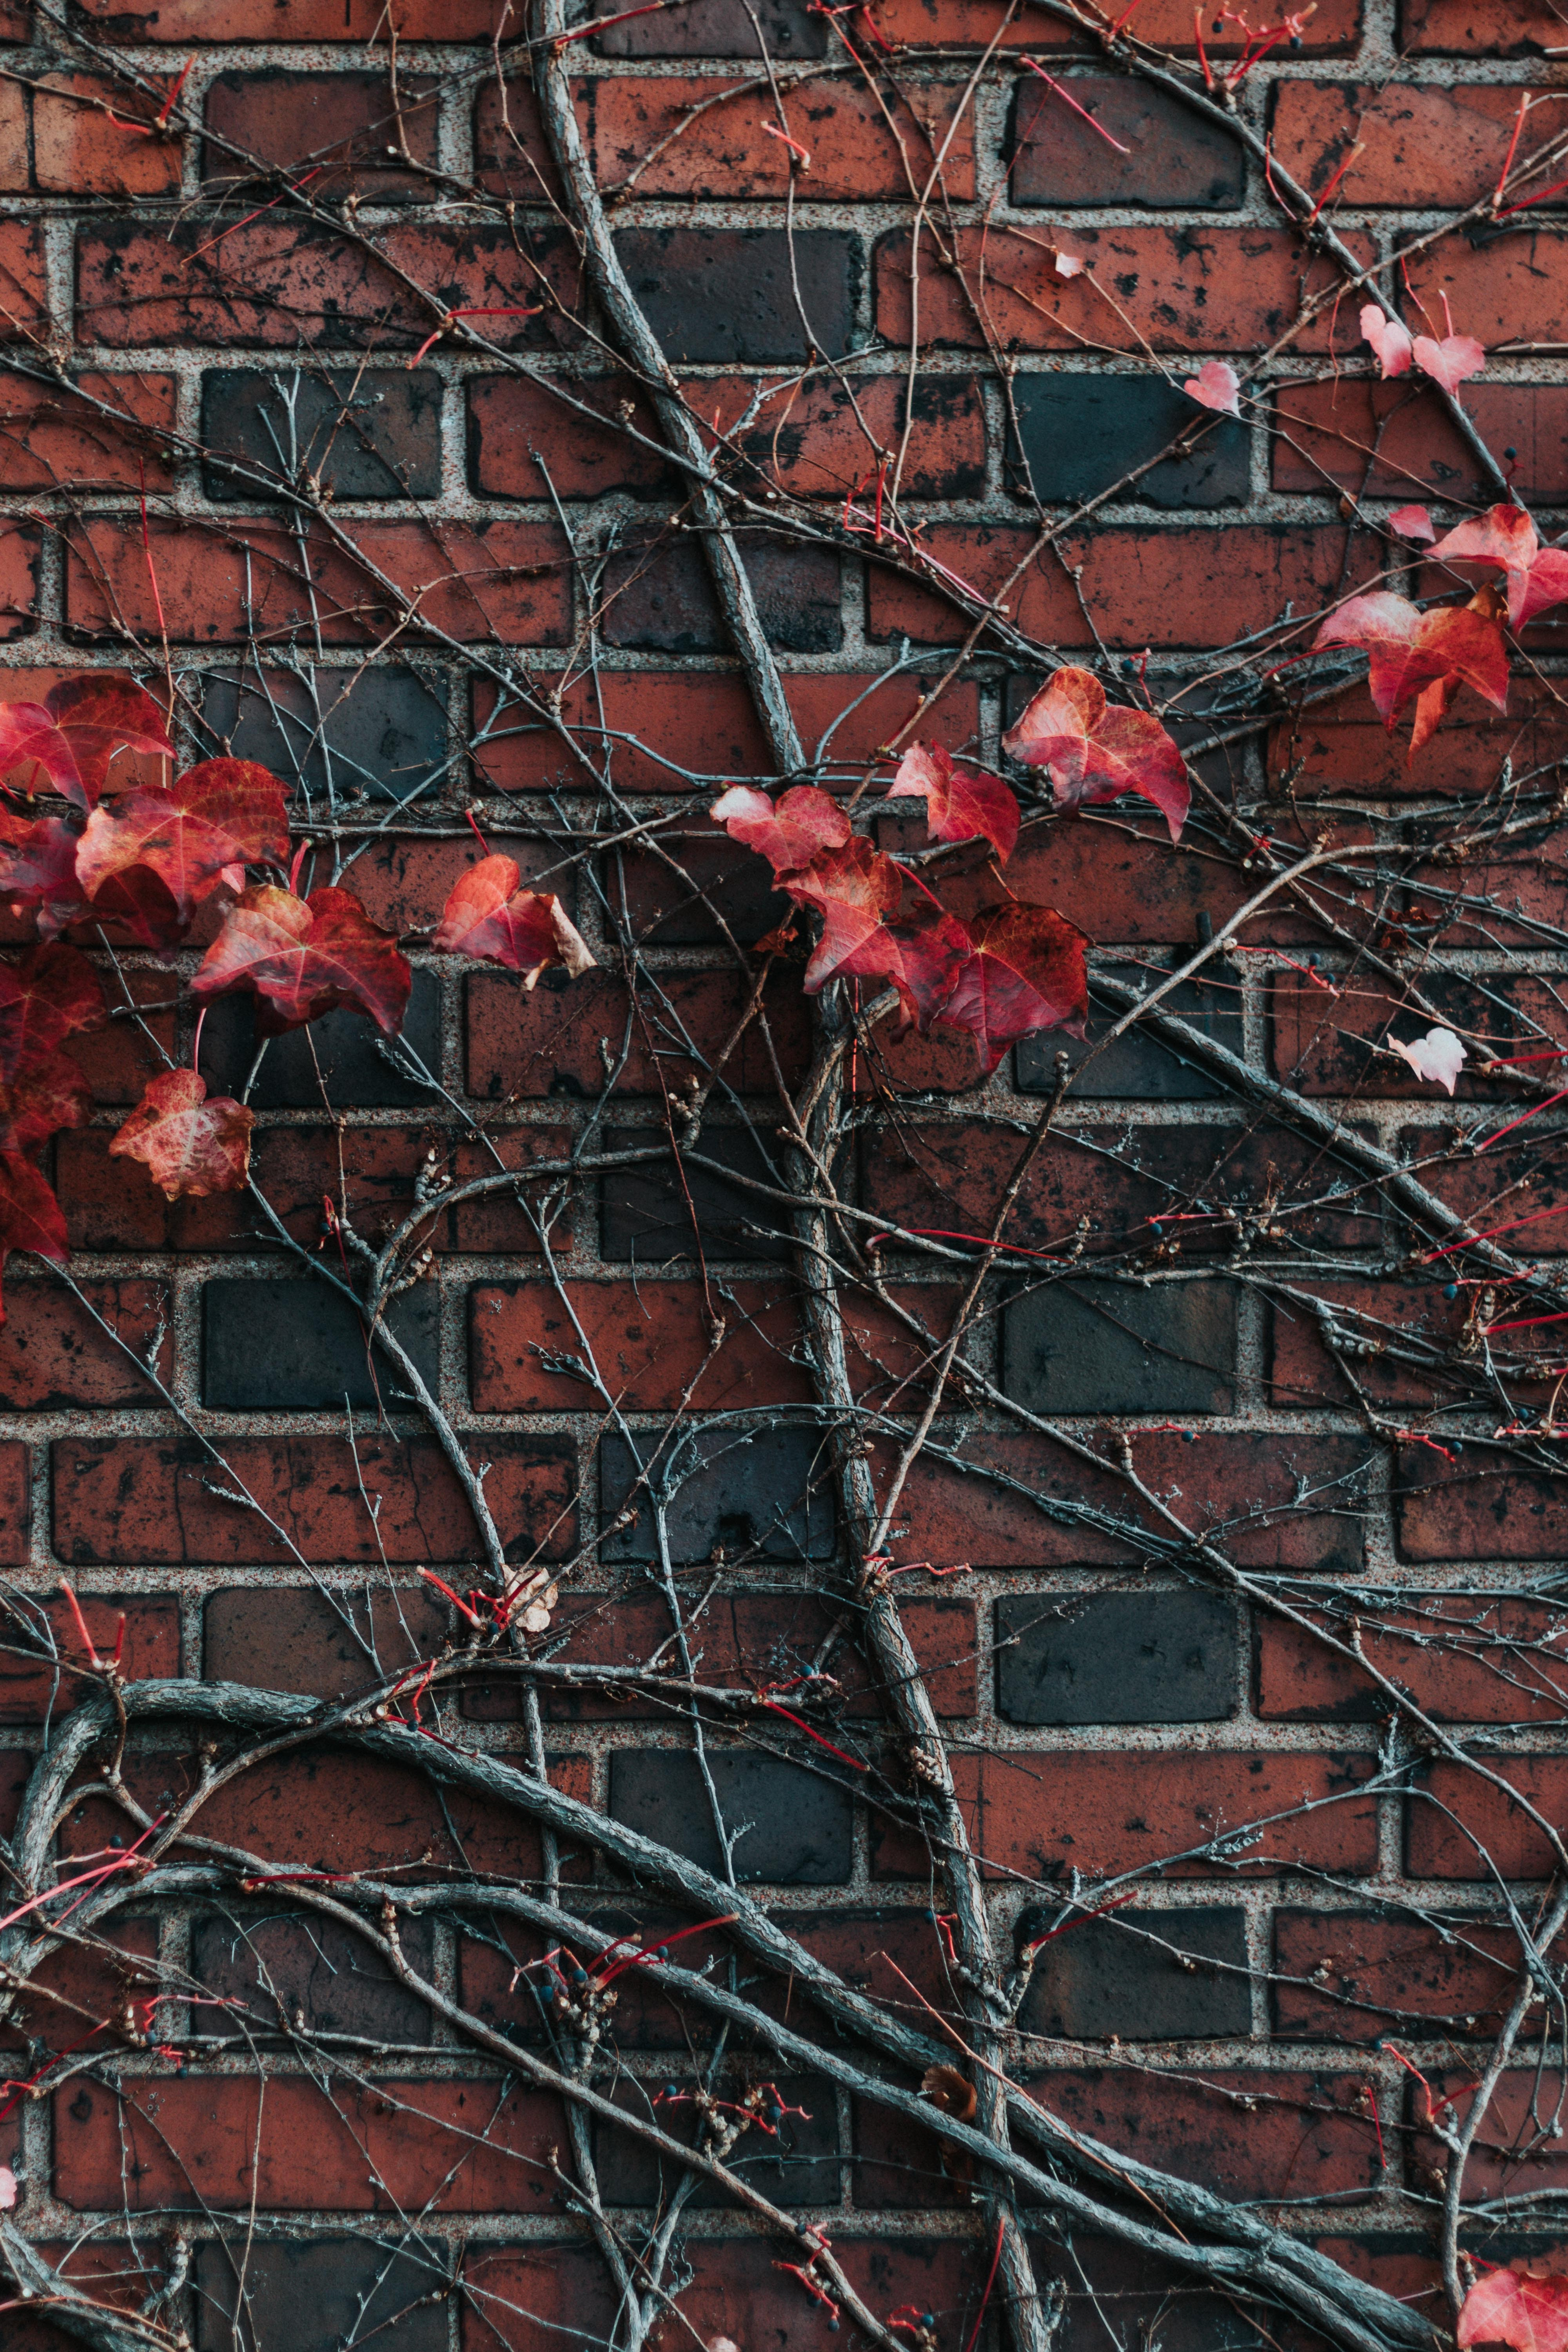 red-petaled flower on red and black brick wall